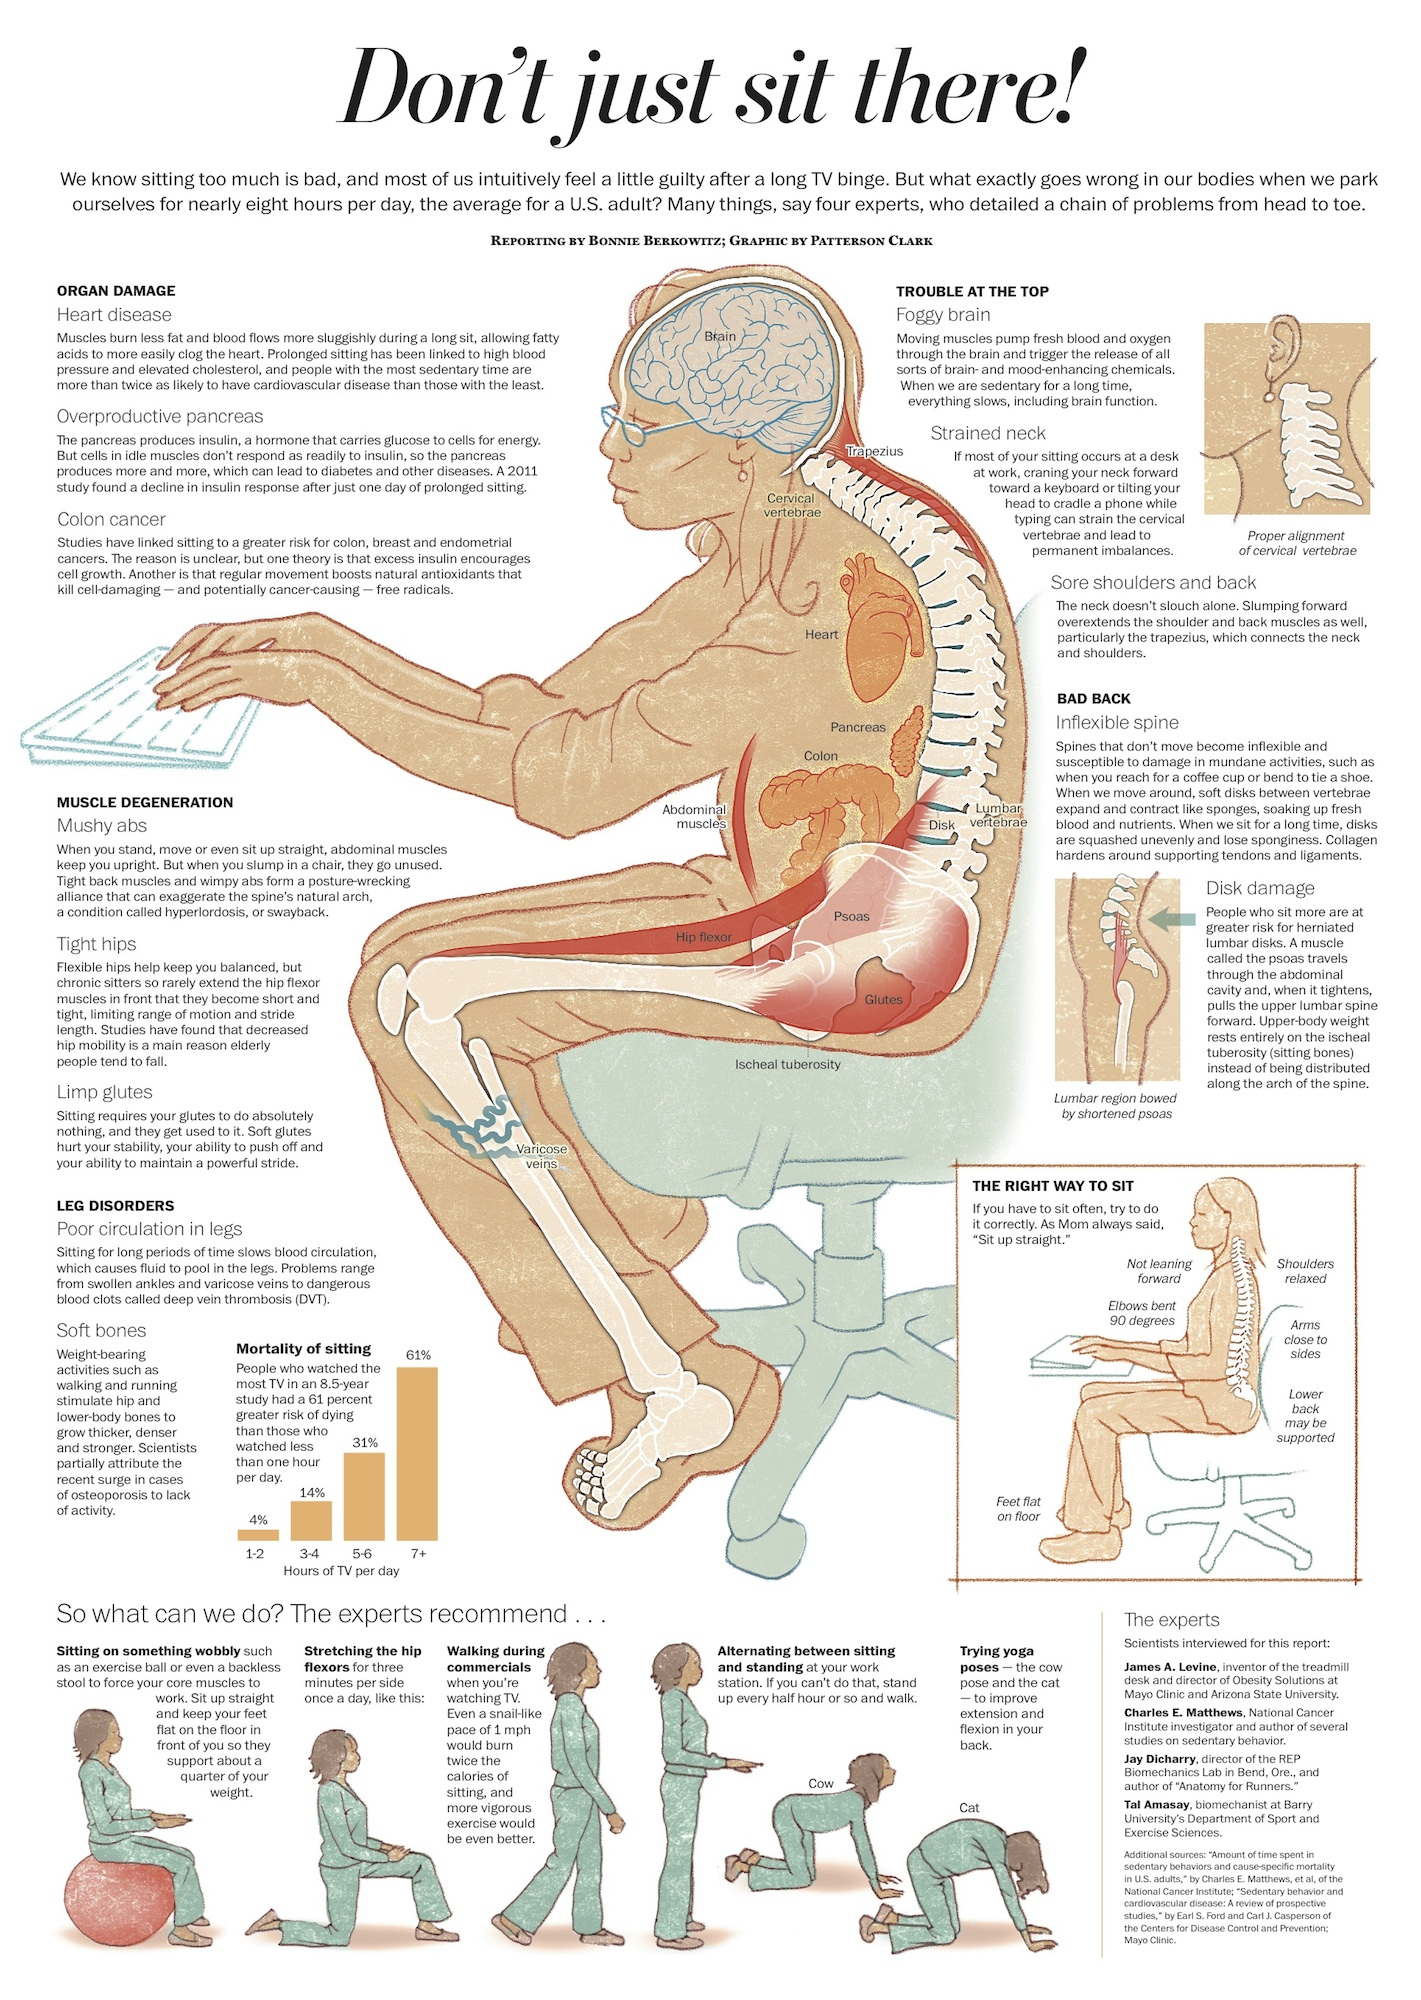 Fight back pain when sitting 8